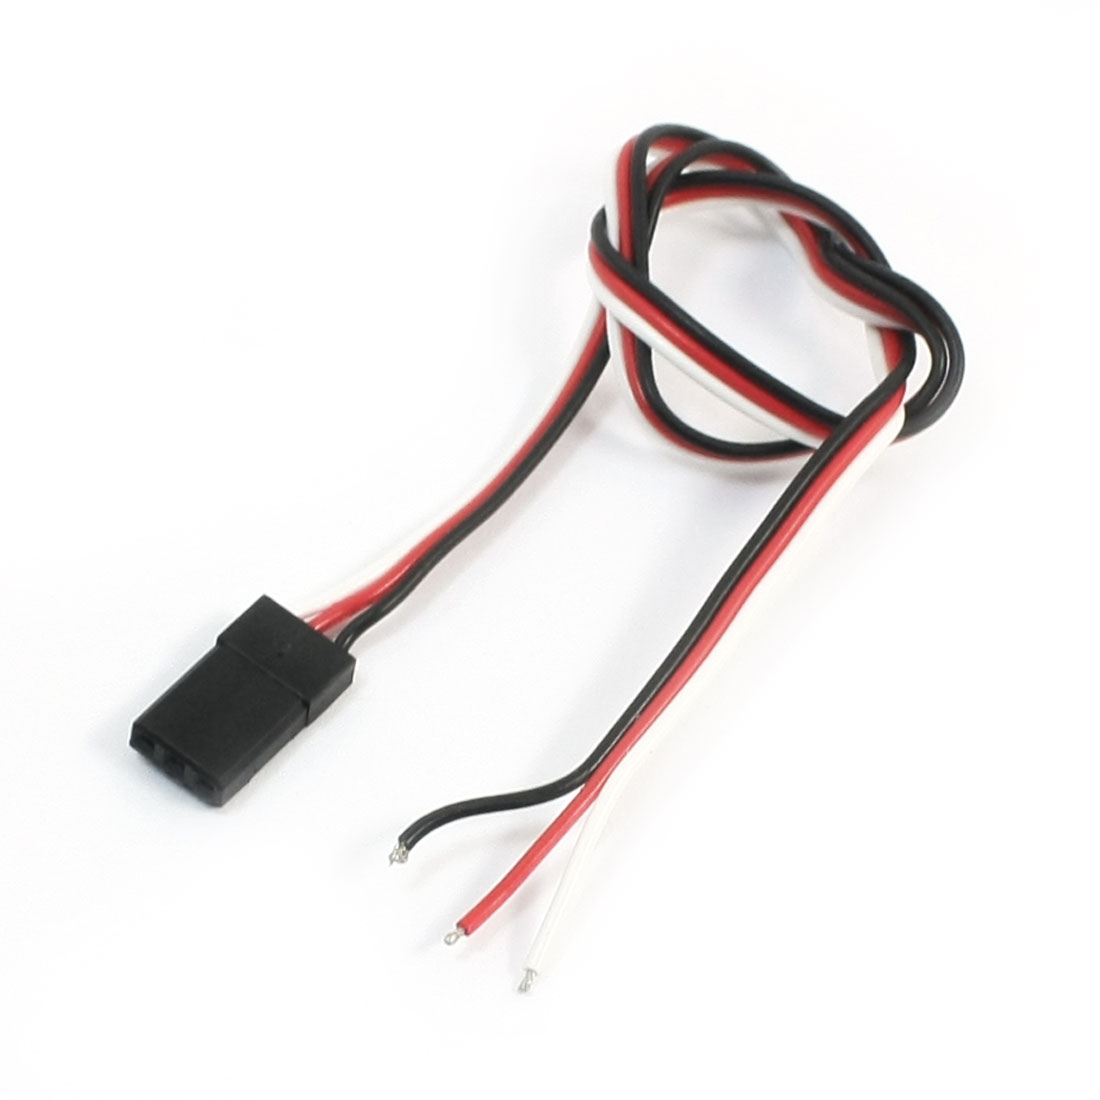 Male J Connector Servo Extension Lead Wire Cable for RC Air Plane 300mm Long